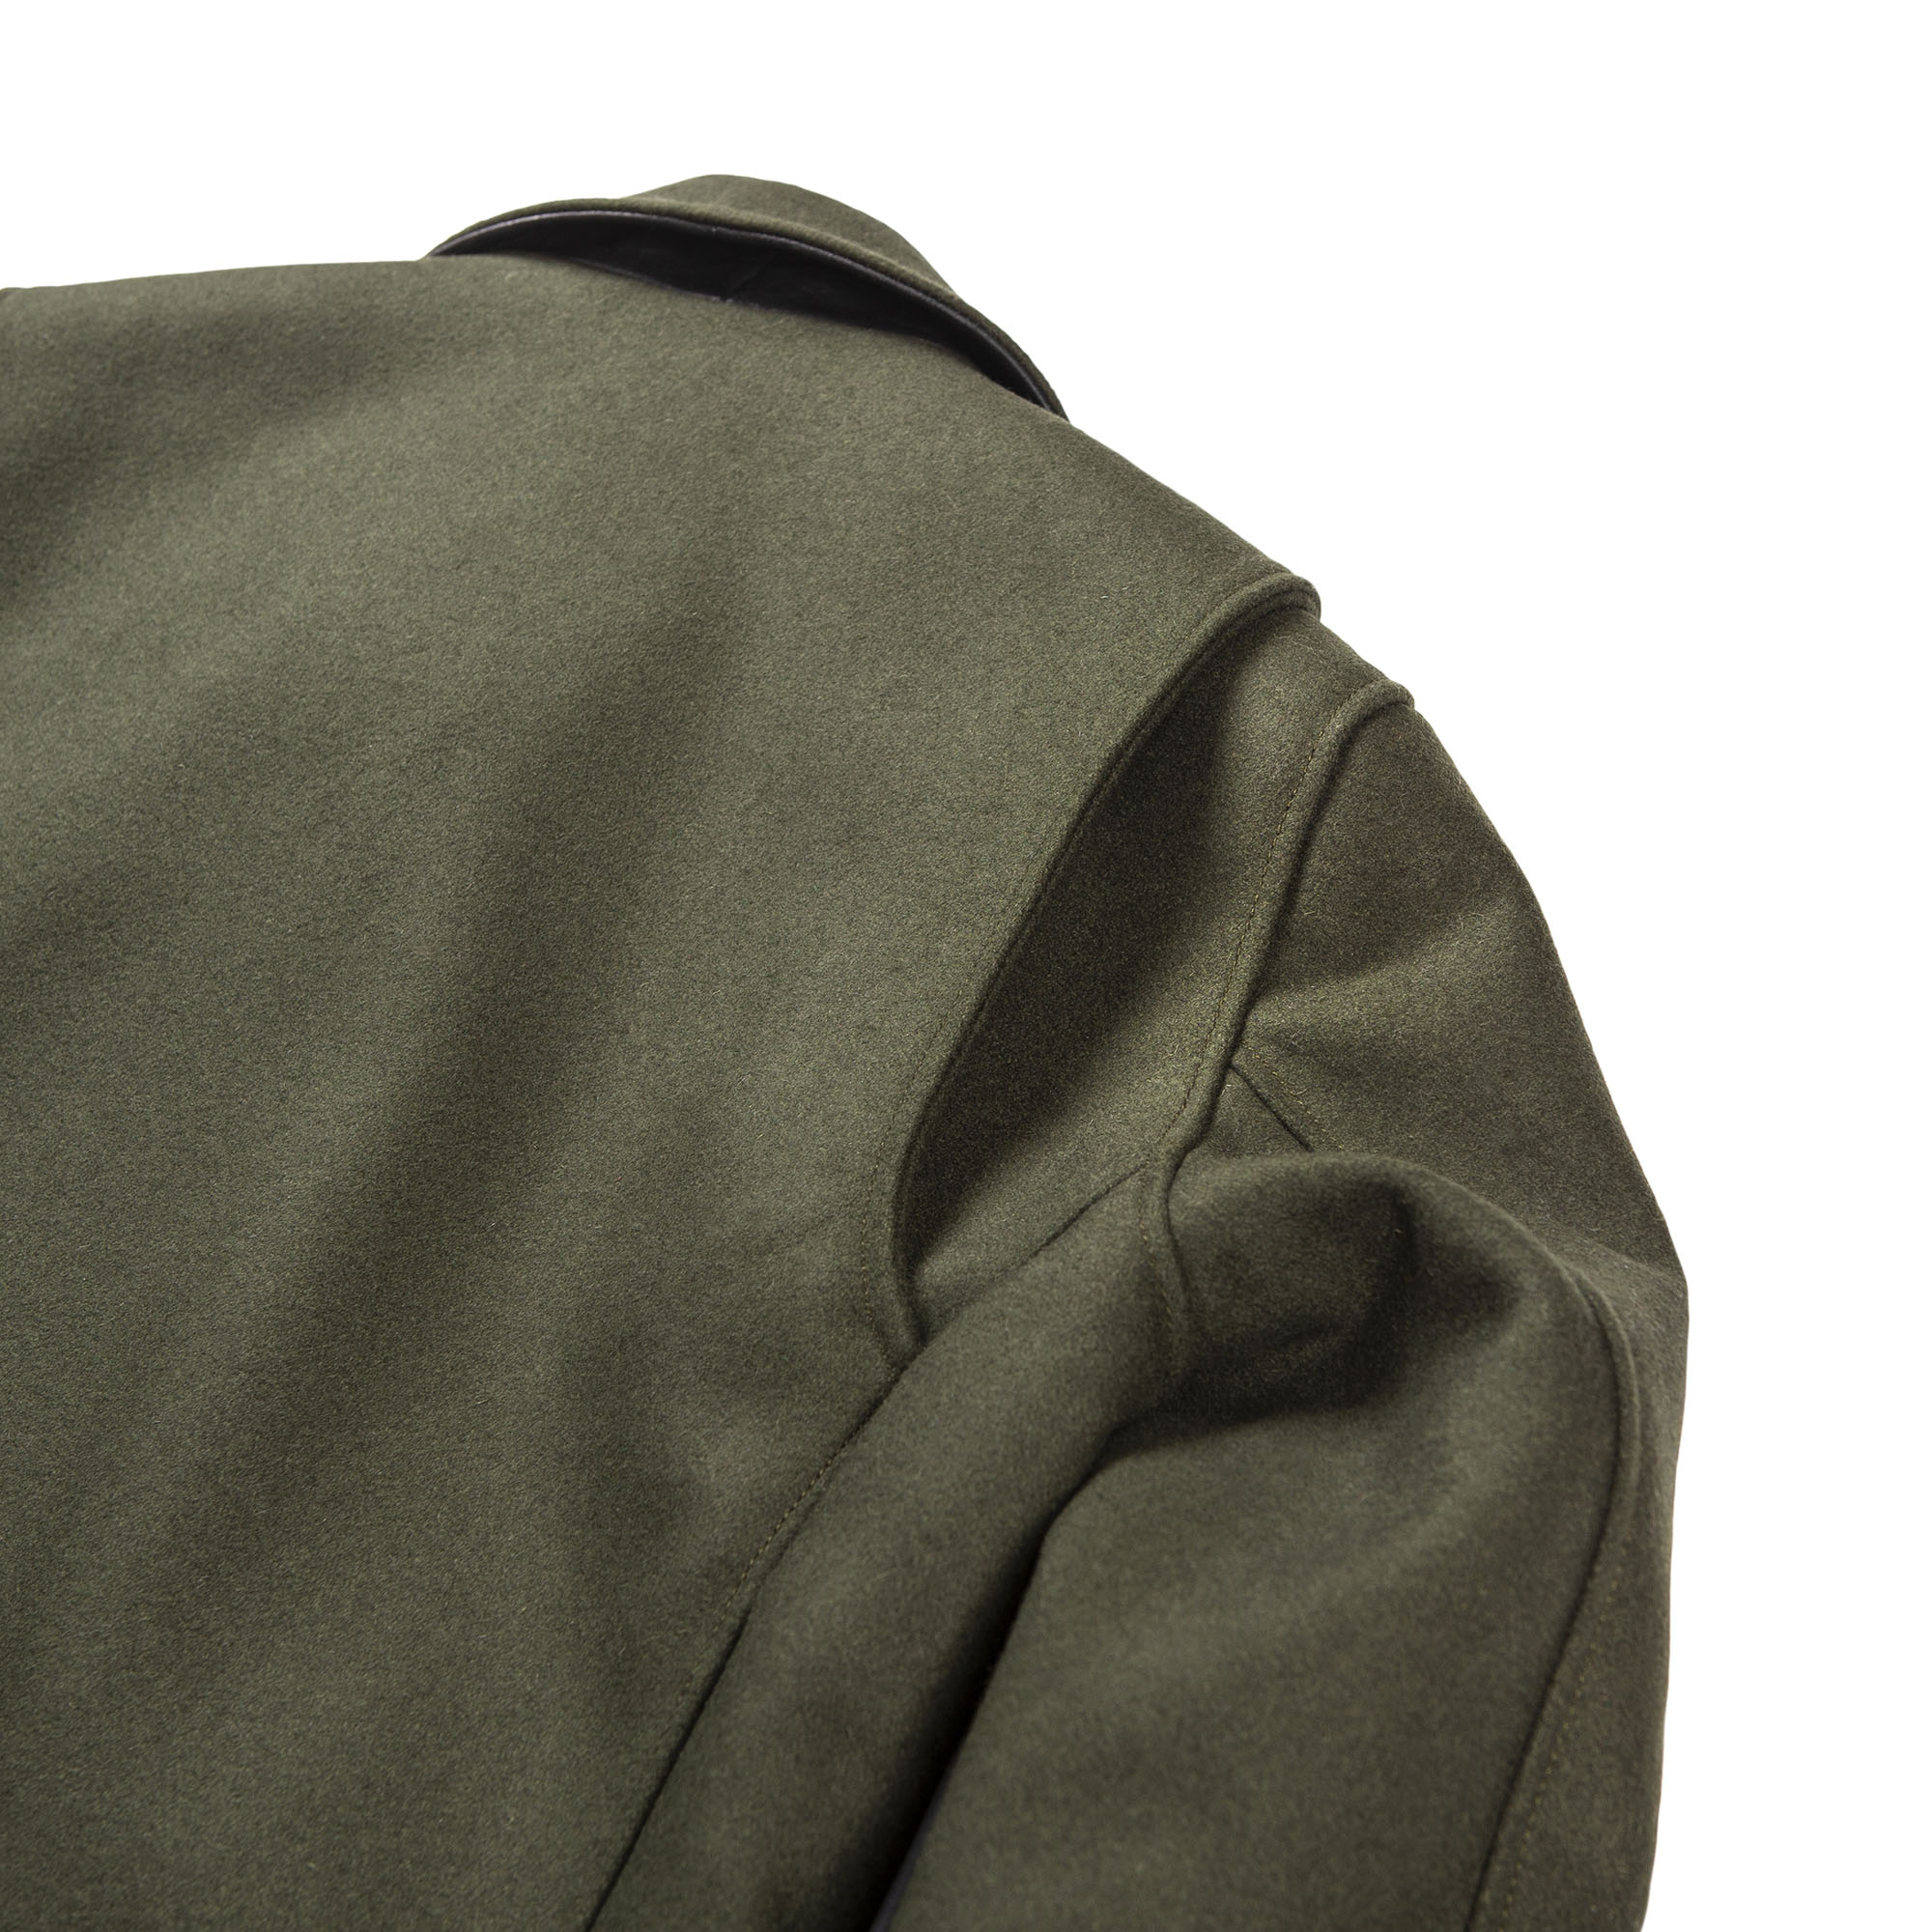 shangri-la-heritage-varenne-forest-green-wool-jacket-still-life-back-detail